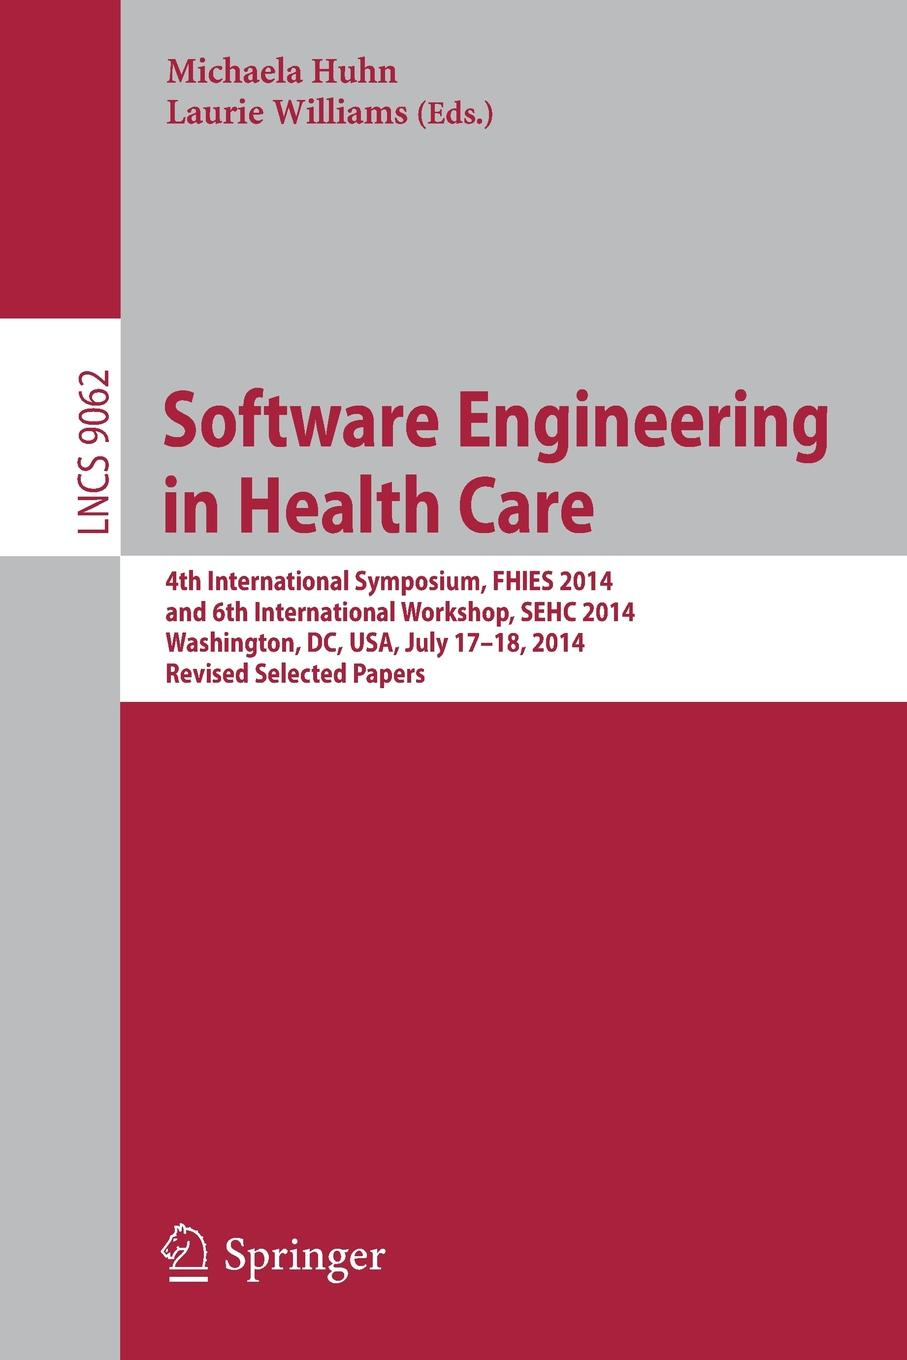 Software Engineering in Health Care. 4th International Symposium, FHIES 2014, and 6th International Workshop, SEHC 2014, Washington, DC, USA, July 17-18, 2014, Revised Selected Papers washington dc top 10